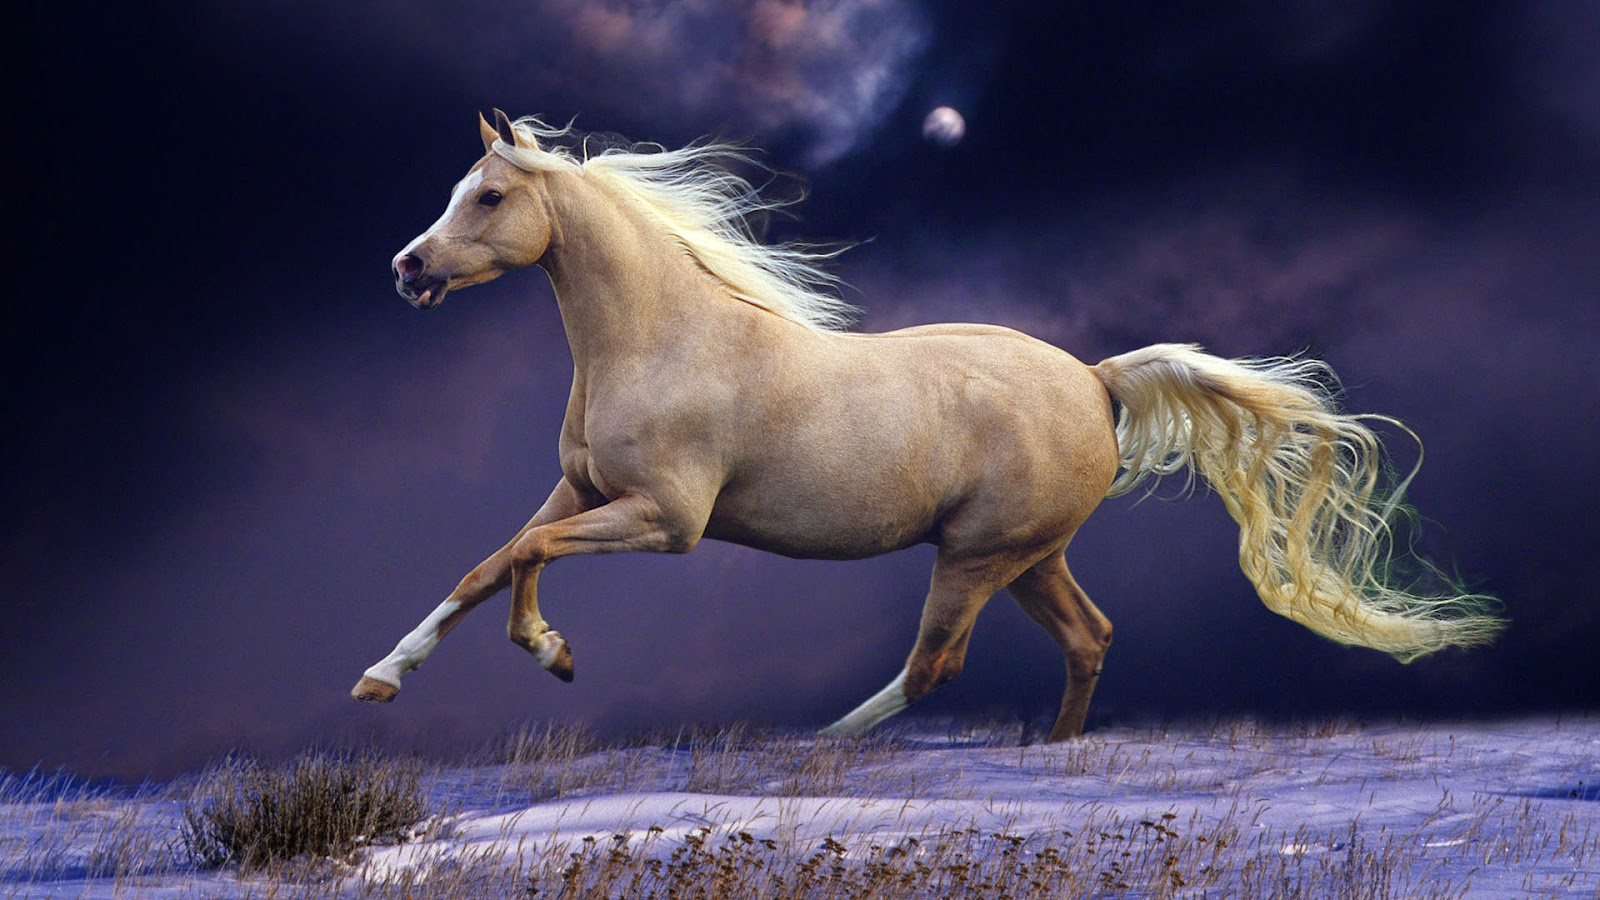 Best Horse Wallpapers  Free Download